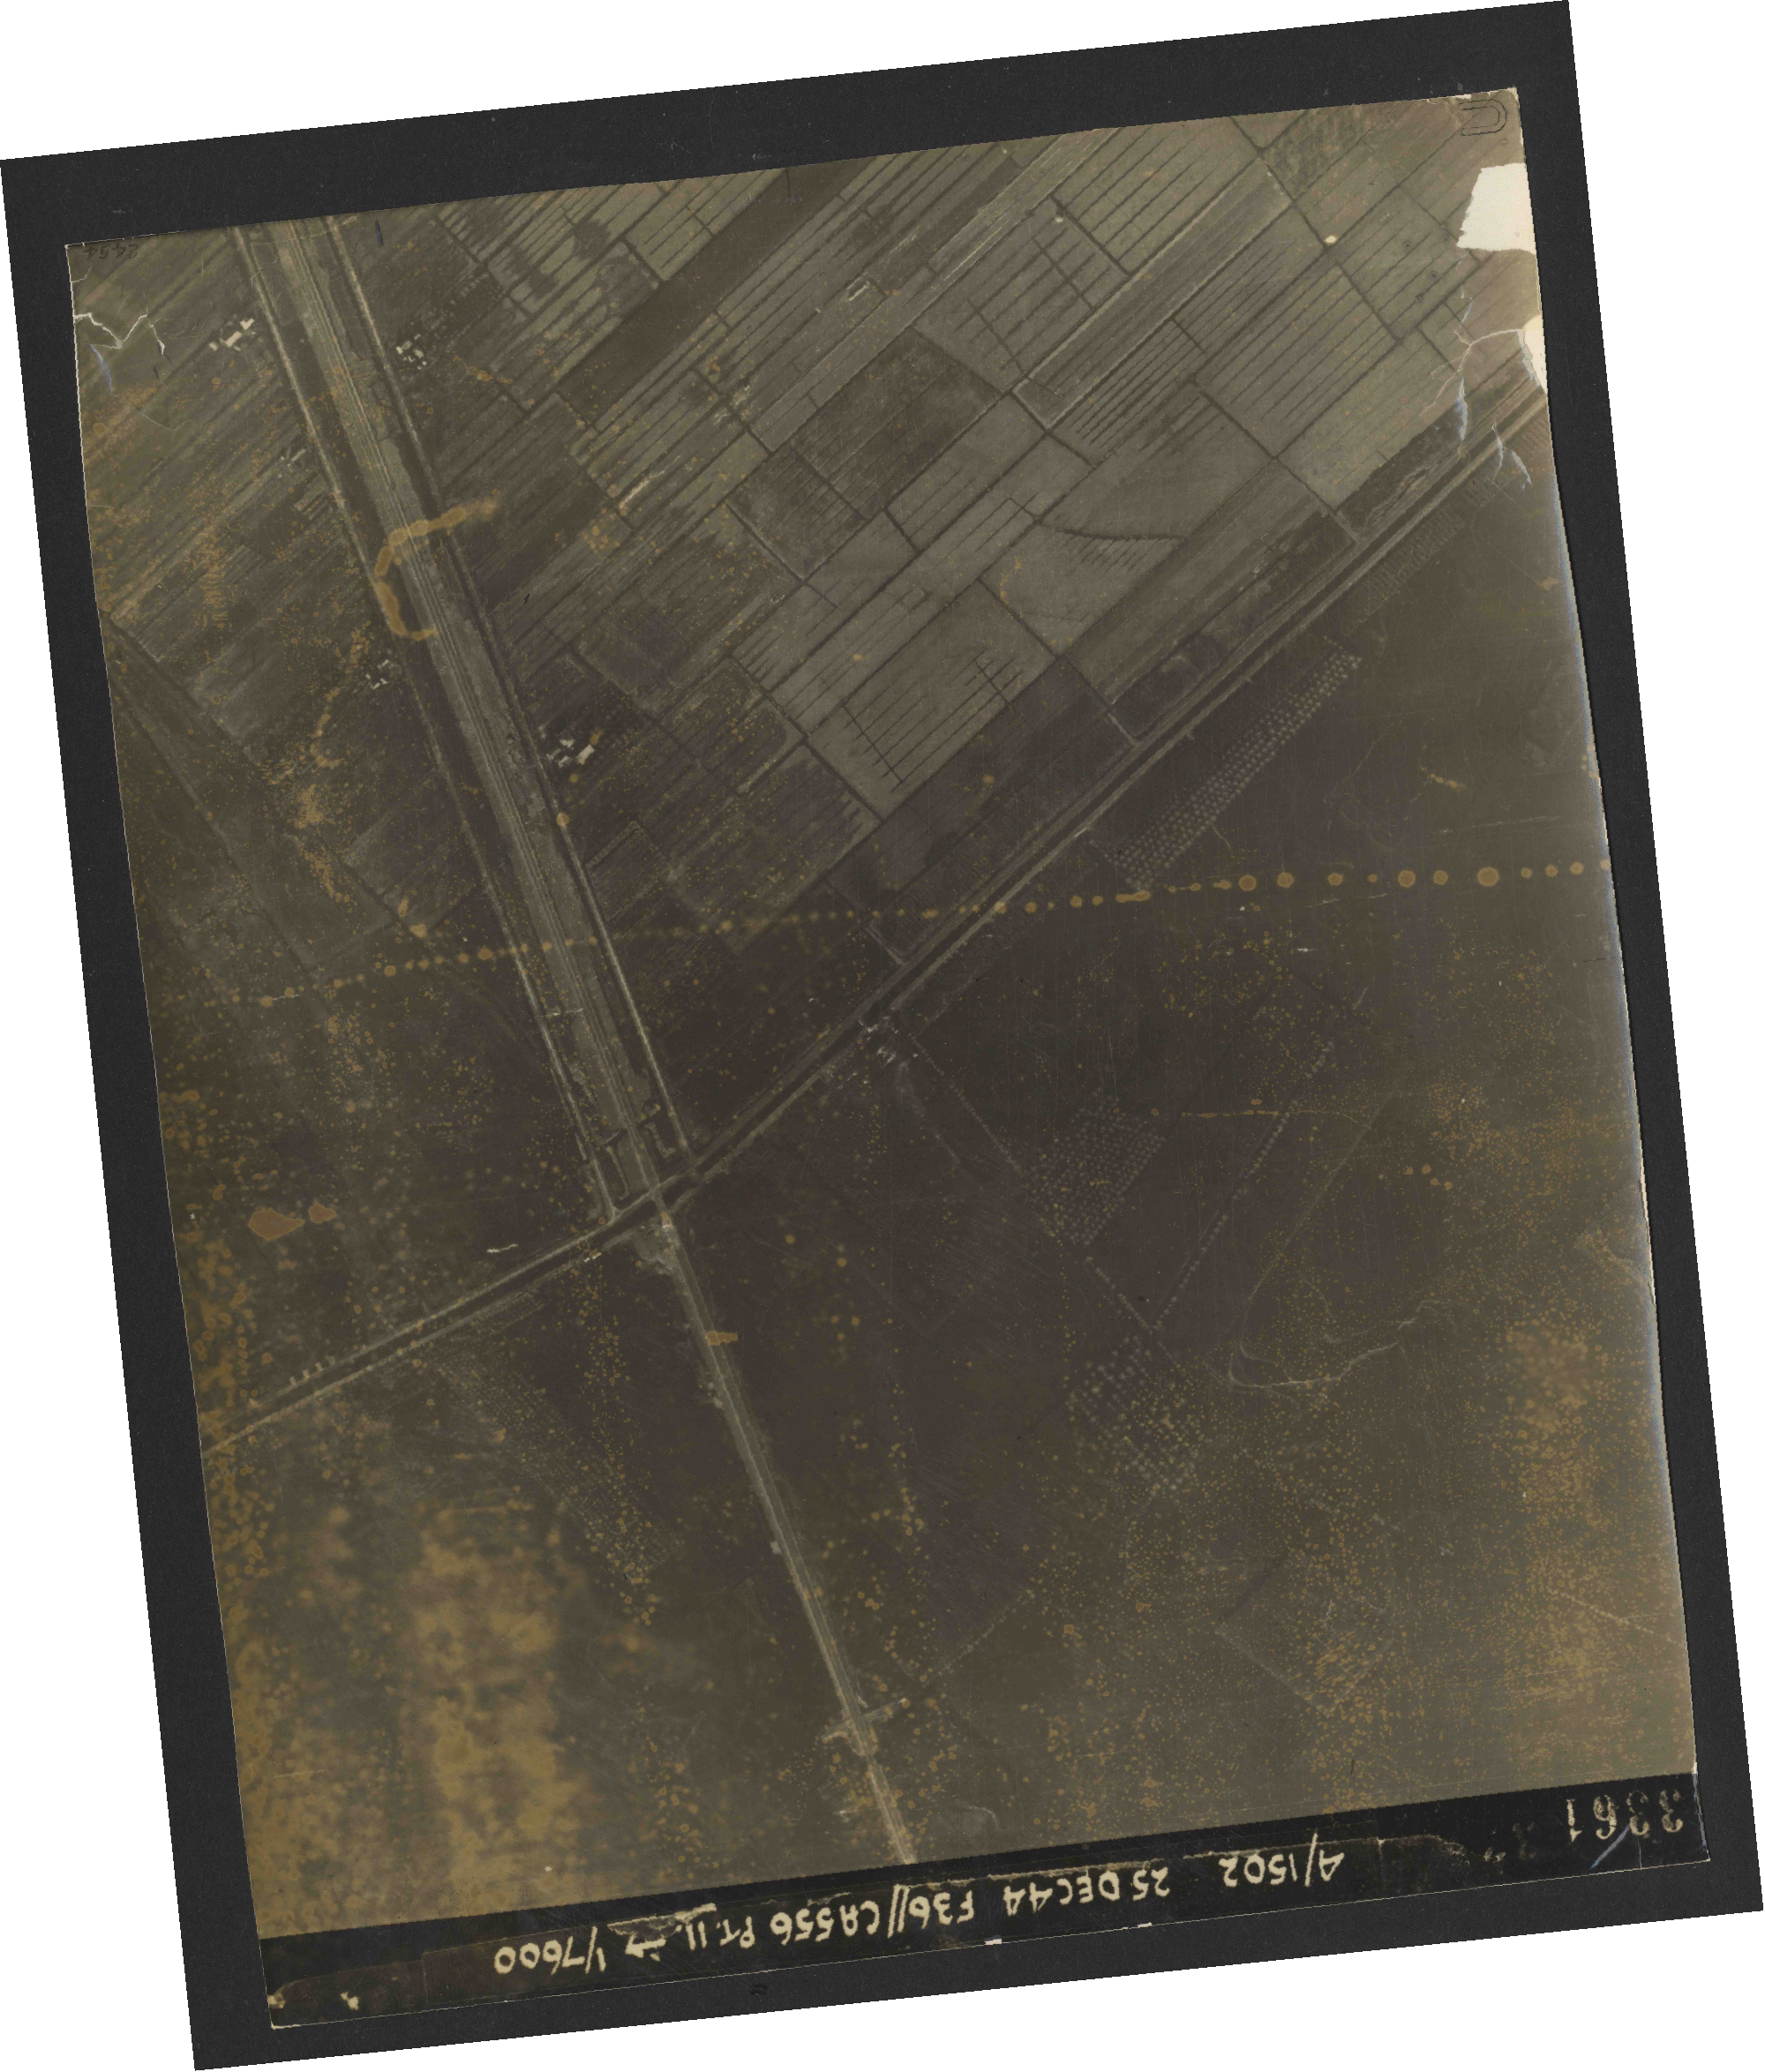 Collection RAF aerial photos 1940-1945 - flight 306, run 12, photo 3361